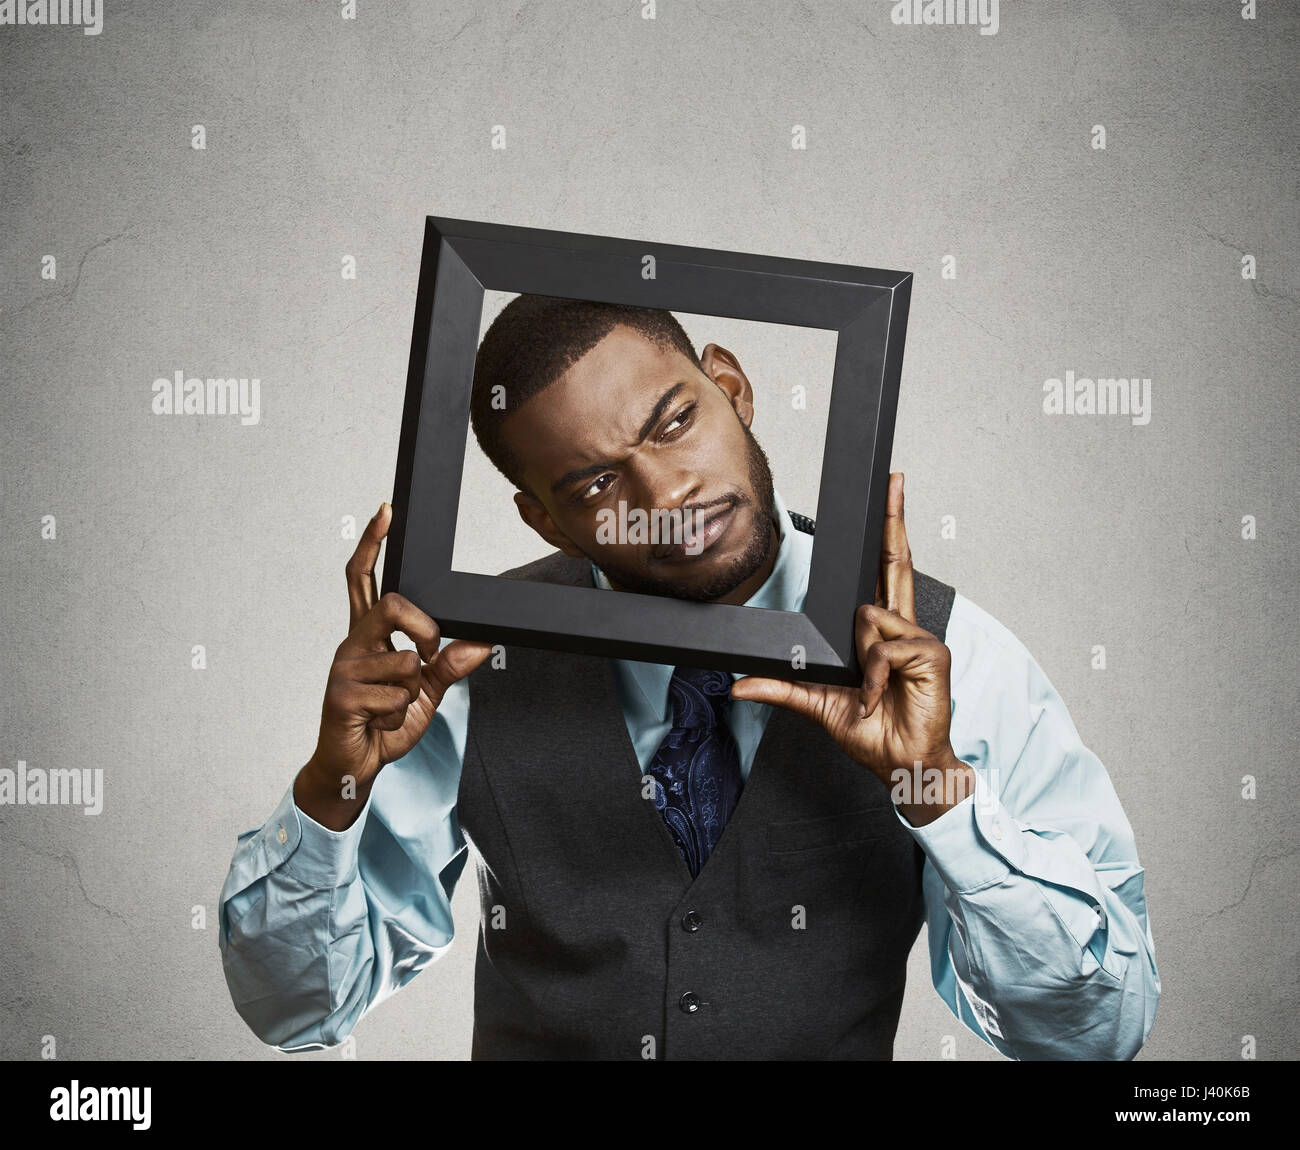 Closeup portrait young businessman executive looking up, curious surprised confused through black picture frame - Stock Image